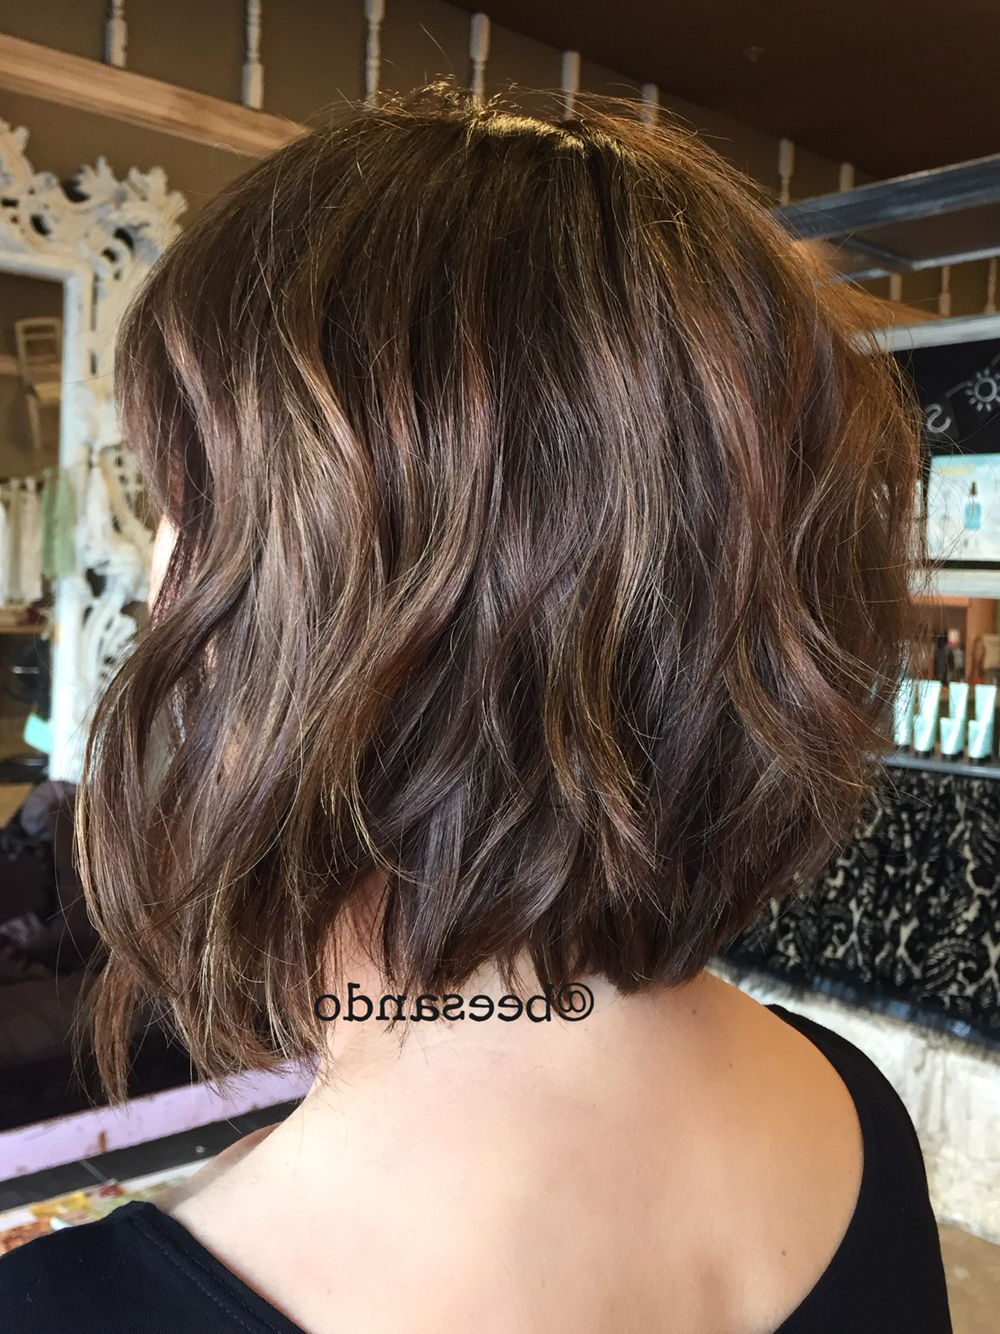 Brunette Balayage Razor Bob | Hair, Make Up, Nails | Pinterest For Nape Length Curly Balayage Bob Hairstyles (View 17 of 20)